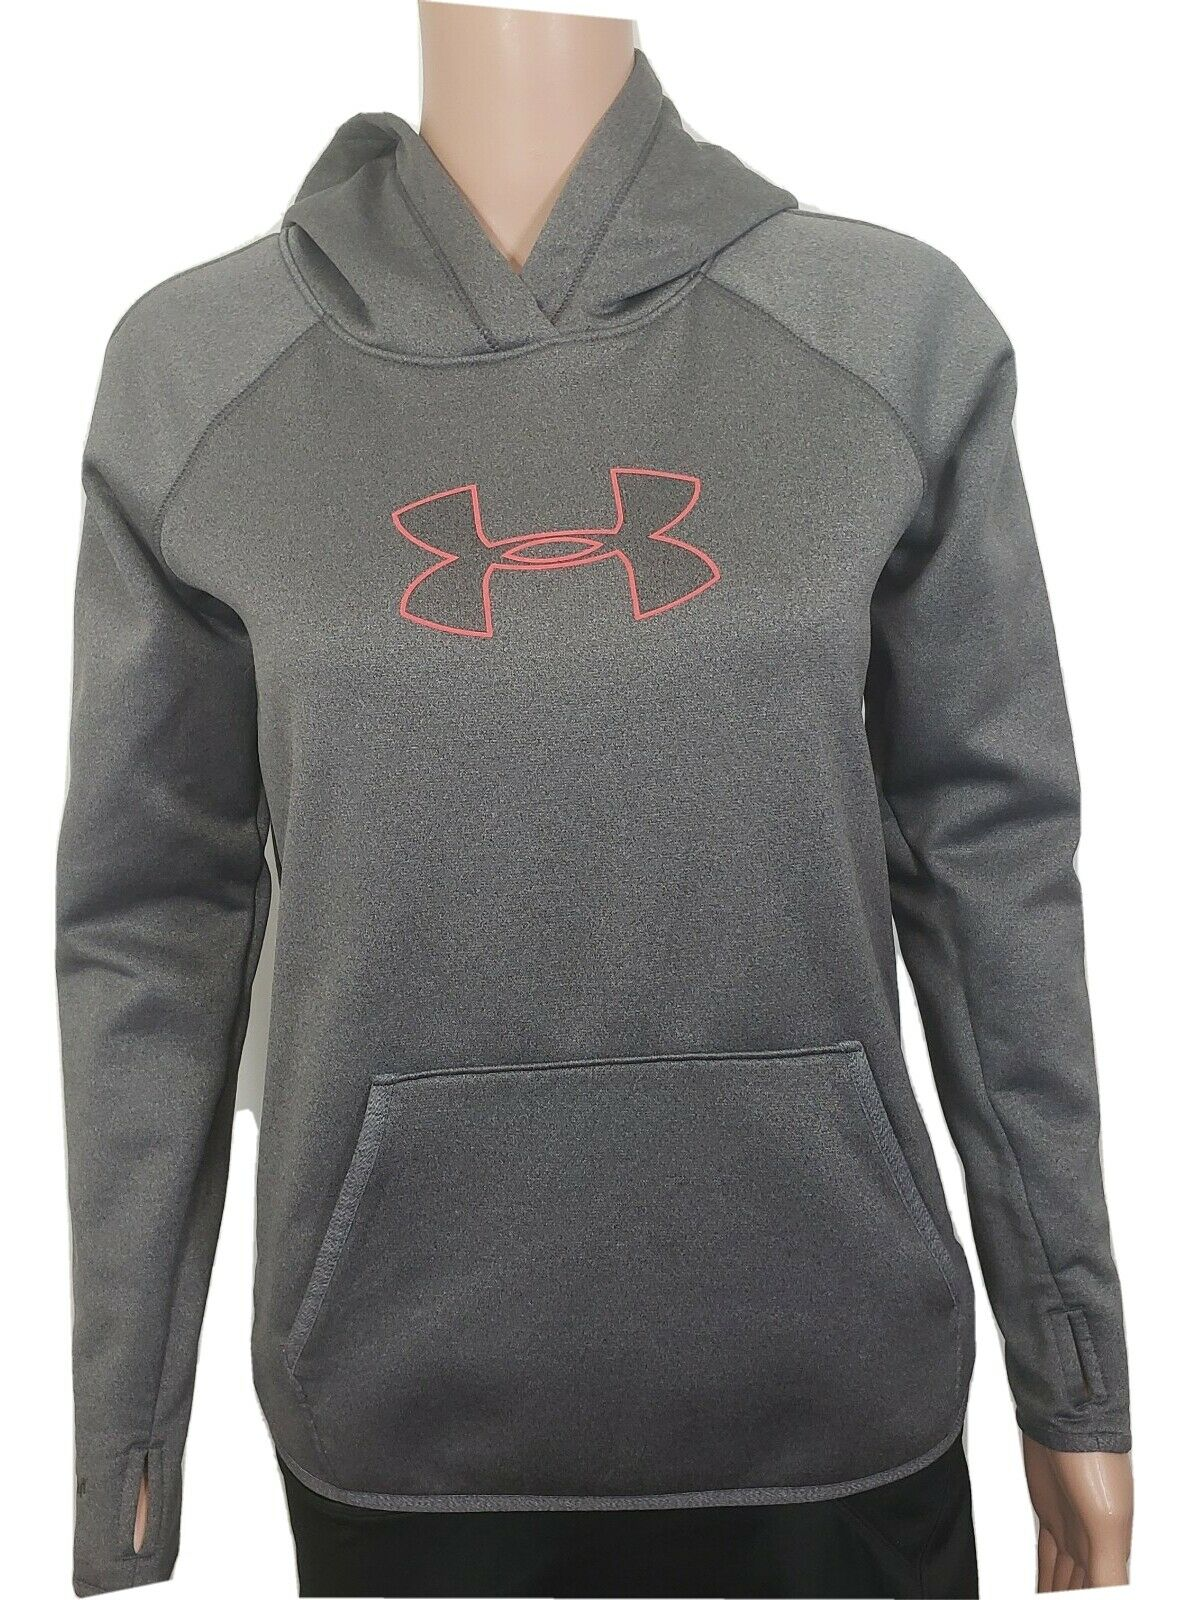 Under Armour Hoodie Size XS Storm Gray Cold Gear Thumbholes Women's